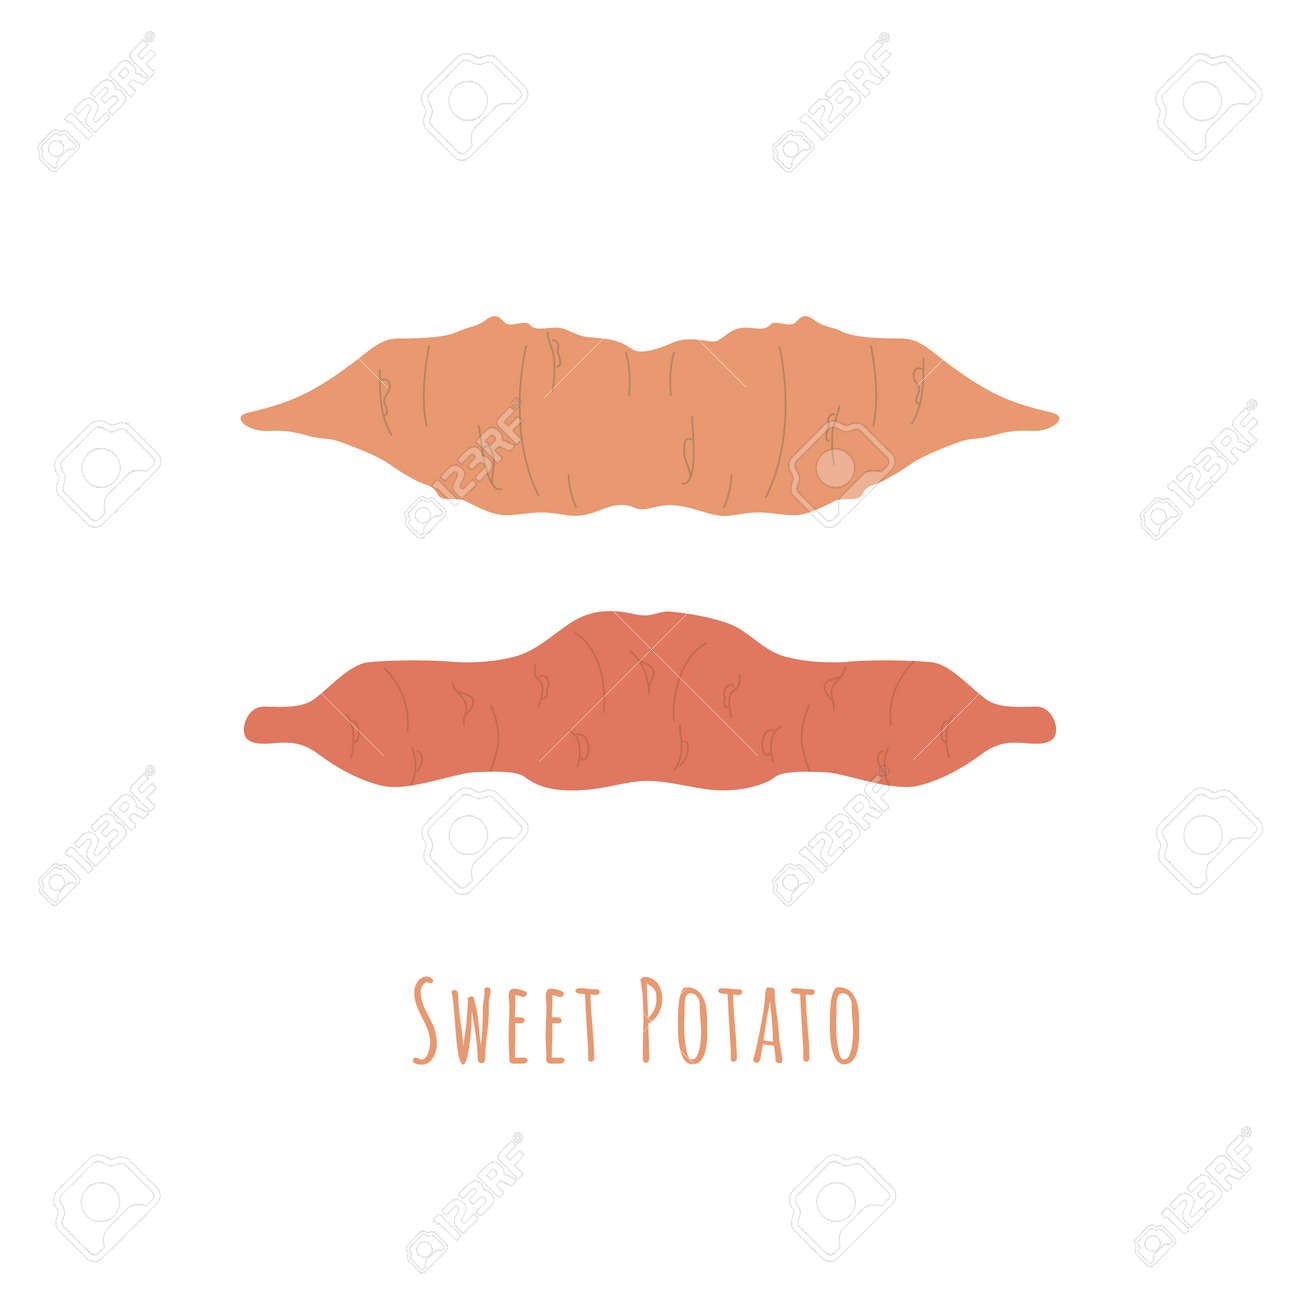 Two whole sweet potatos isolated on white and made in flat style. No outlined Symmetrical shapes filled with color only. Colorful vector illustration for product design, web and print usage. - 167239110